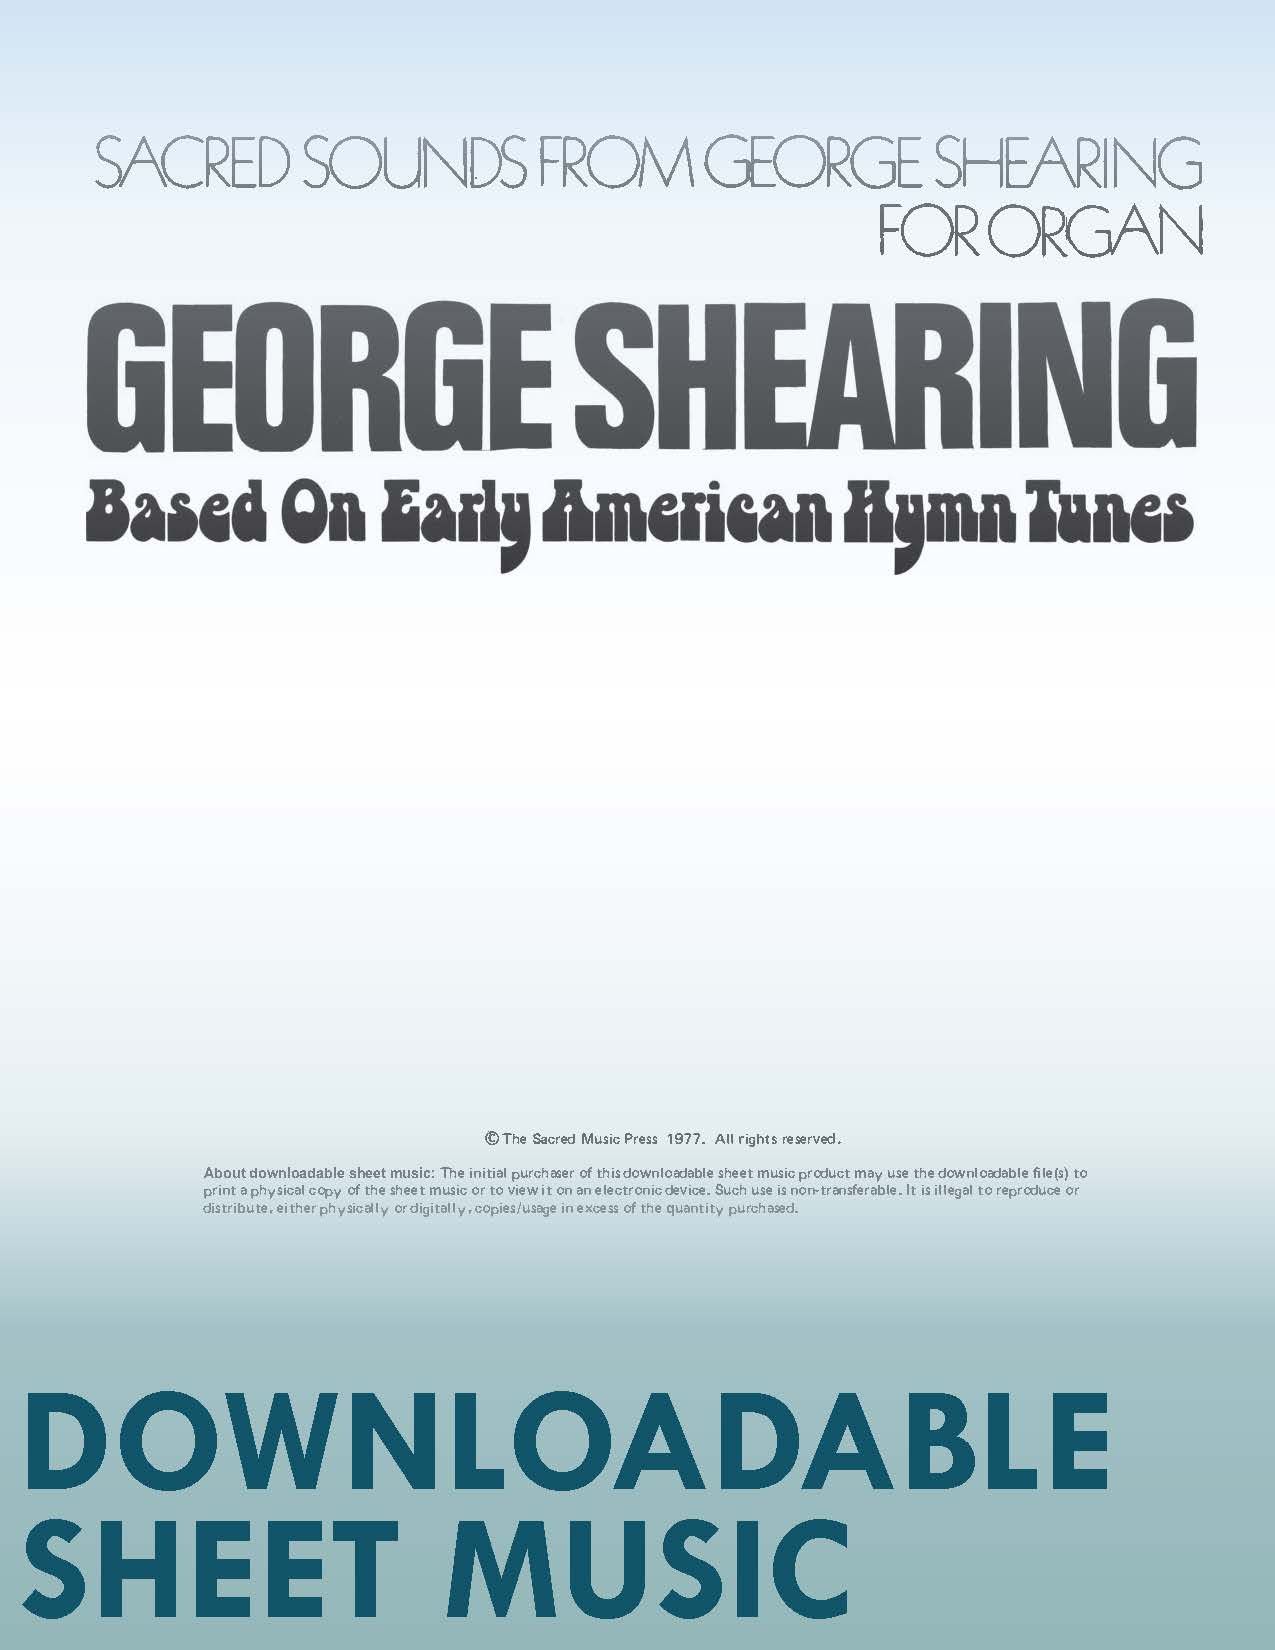 Sacred Sounds from George Shearing For Organ - Digital Download